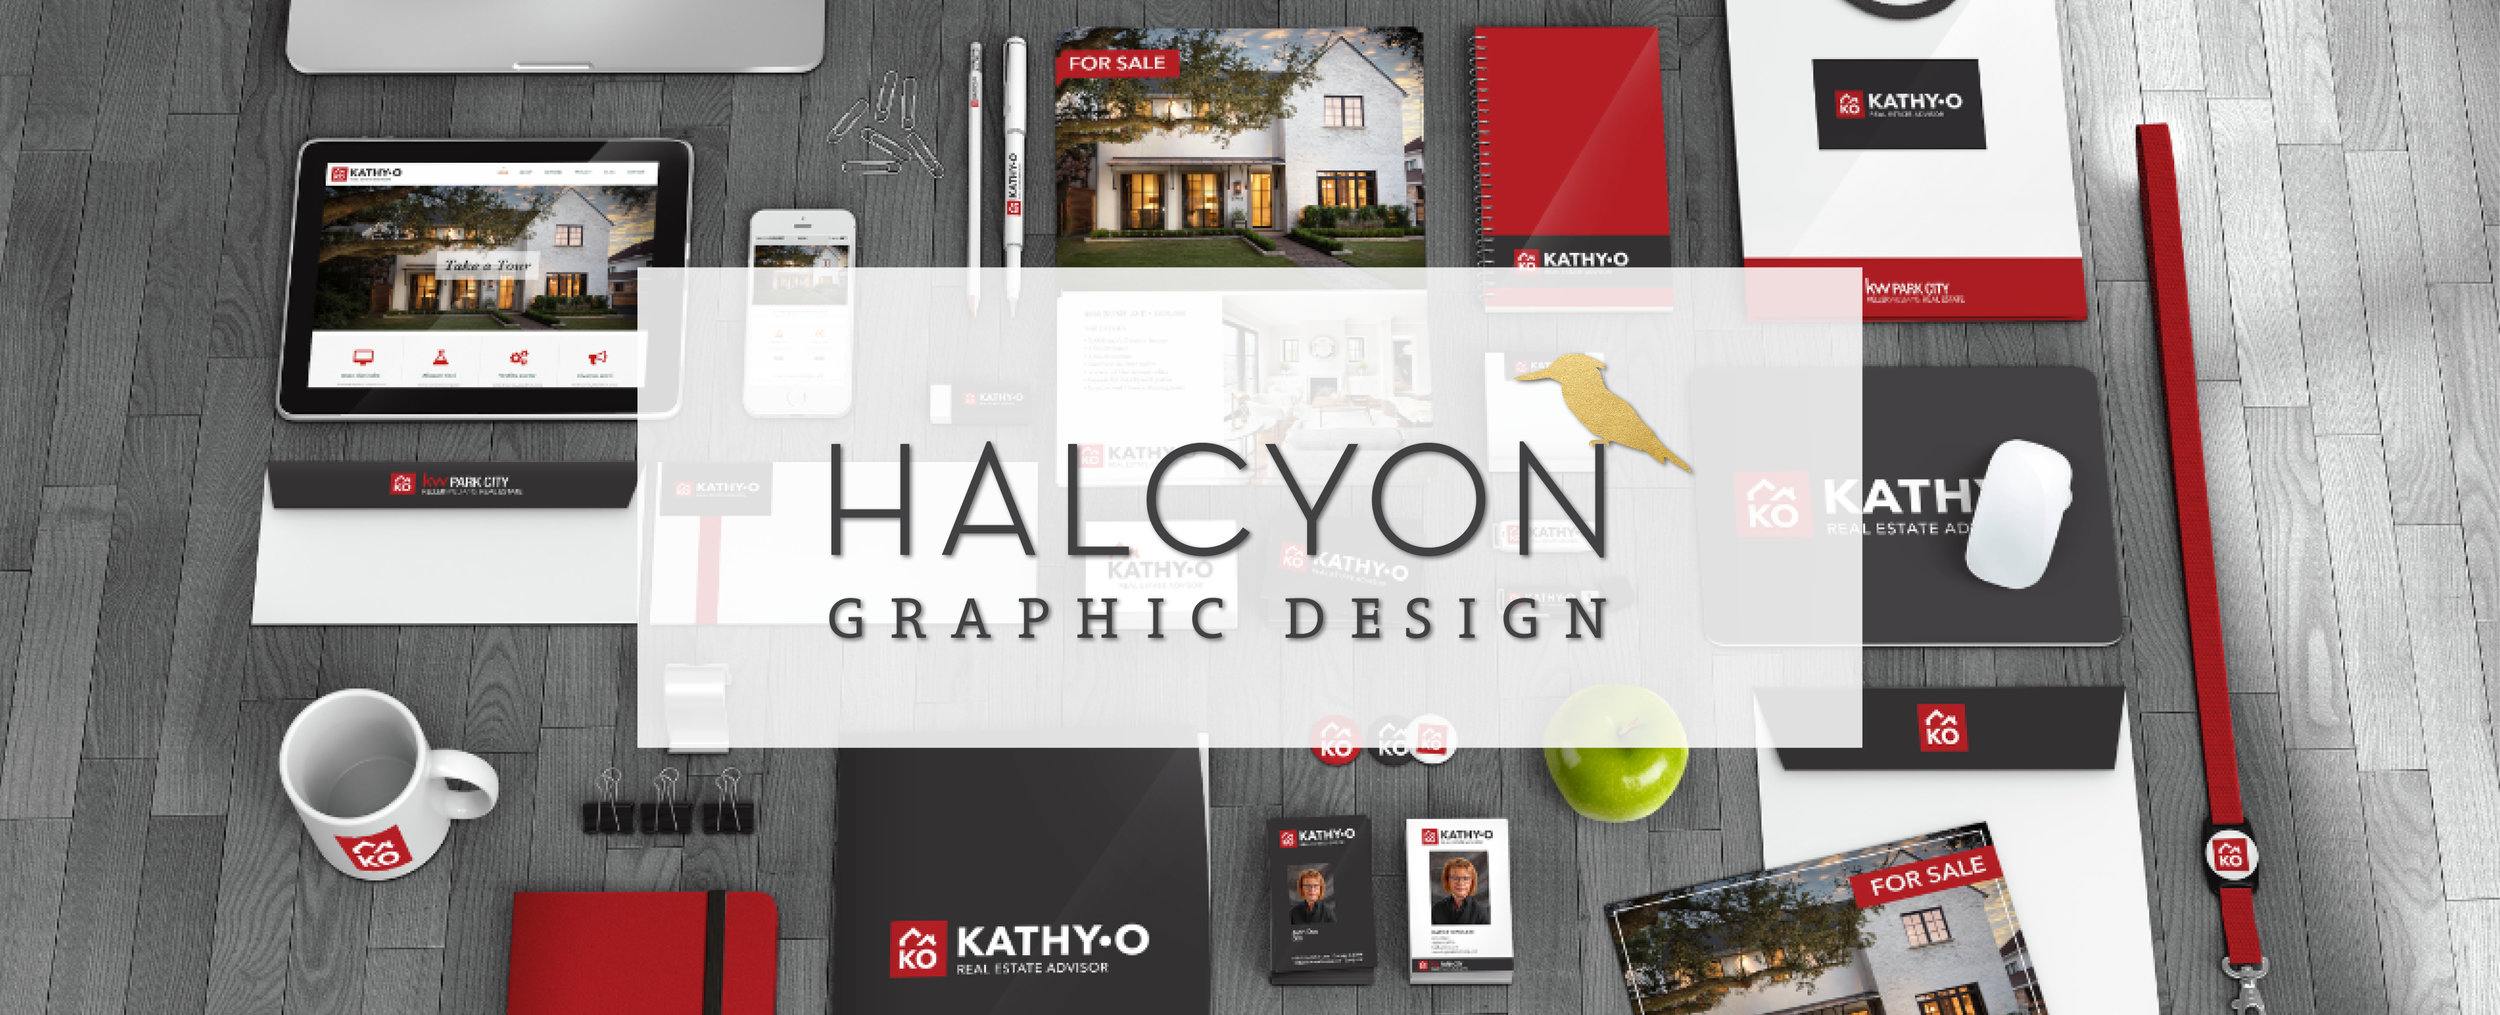 Halcyon Graphic Design is full-service design firm, offering services from       branding all the way to the finish of marketing materials, websites, and signage.